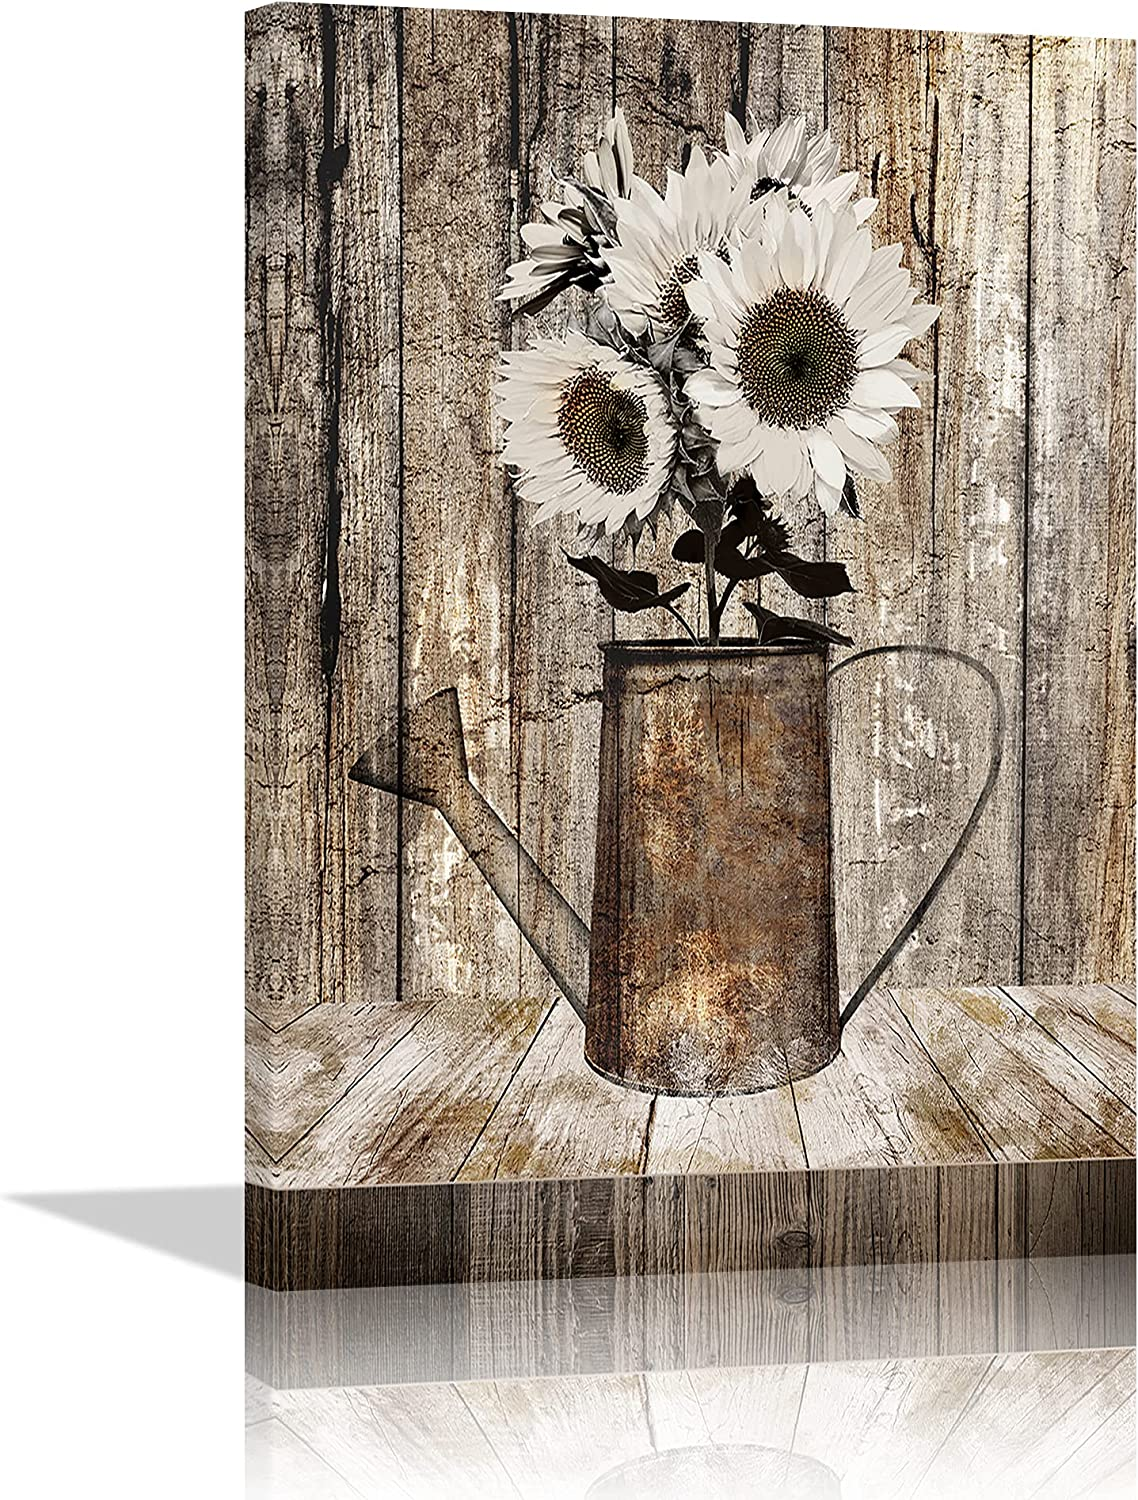 Country Sunflower Wall Art Decor for Home Bombing free shipping Farmhouse Soldering Rustic